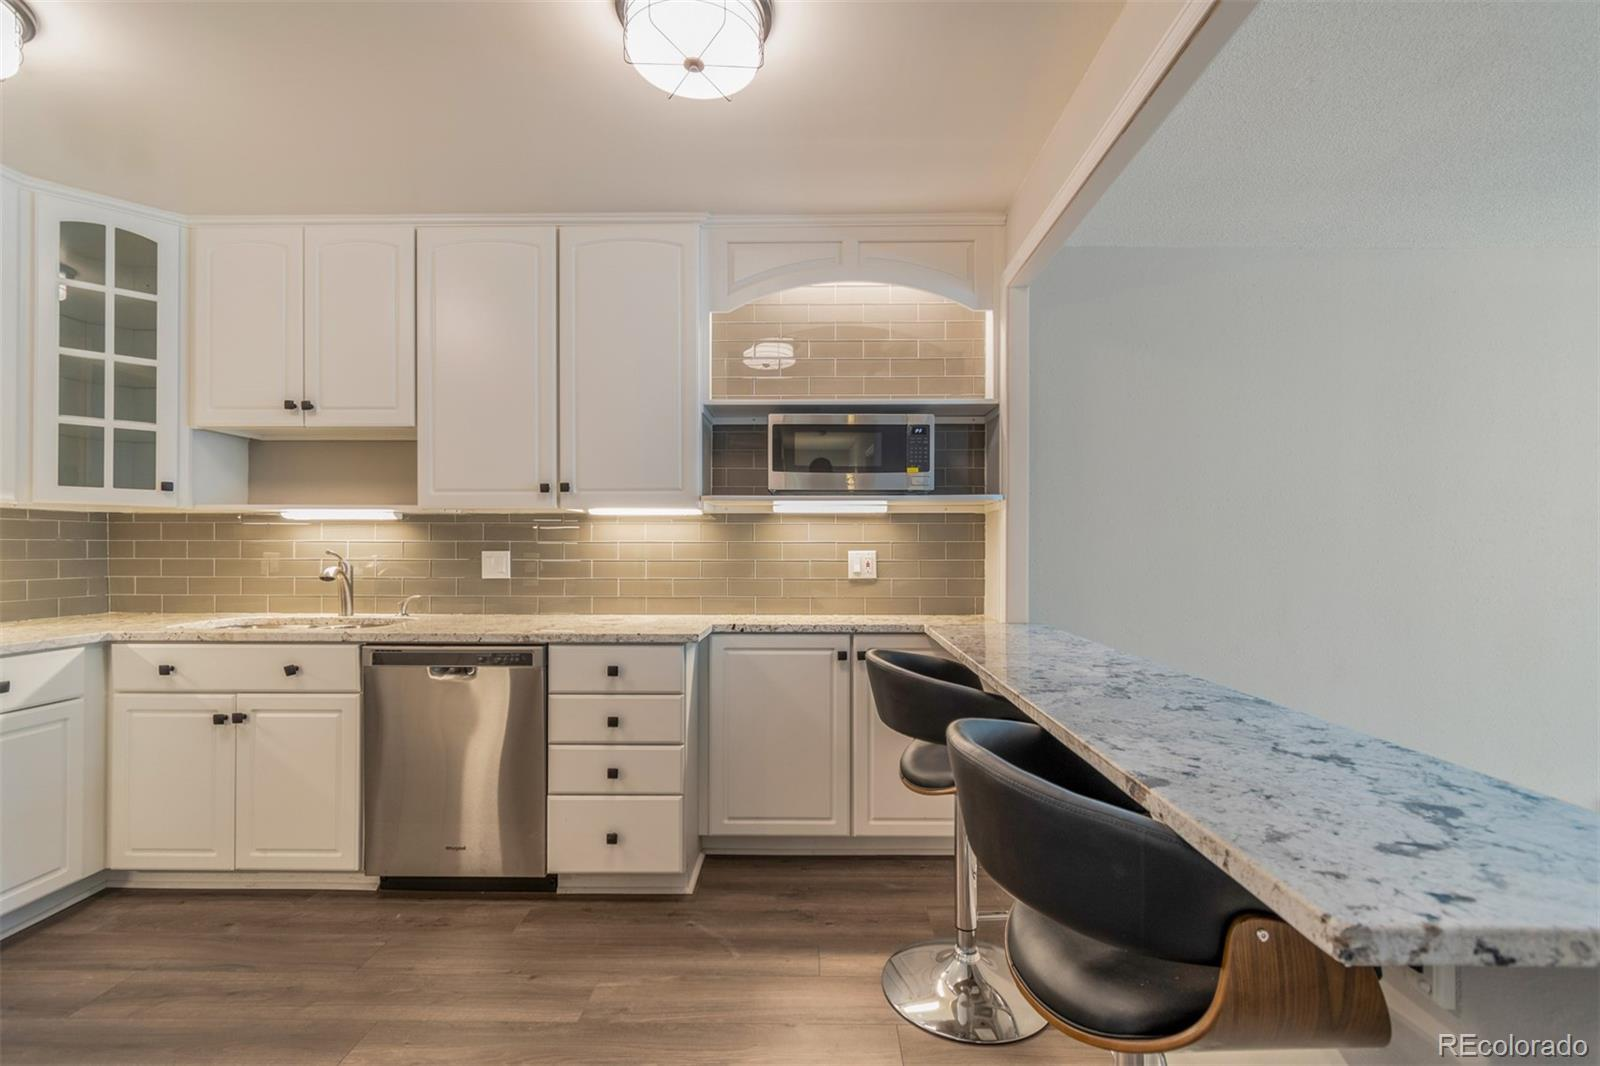 2 GARAGES are included with this unit . FORMAL DINING ROOM . Fabulous remodel with high end finishes.  New kitchen and baths, all new appliances, formal dining area plus counter bar. Designer touches throughout.  Be the first to see this great unit.  Sits back off the street so very quiet location.  Seller is motivated and may consider trade. Garage 182 in lot 9  and other garage is across street in lot 8 and is #55.